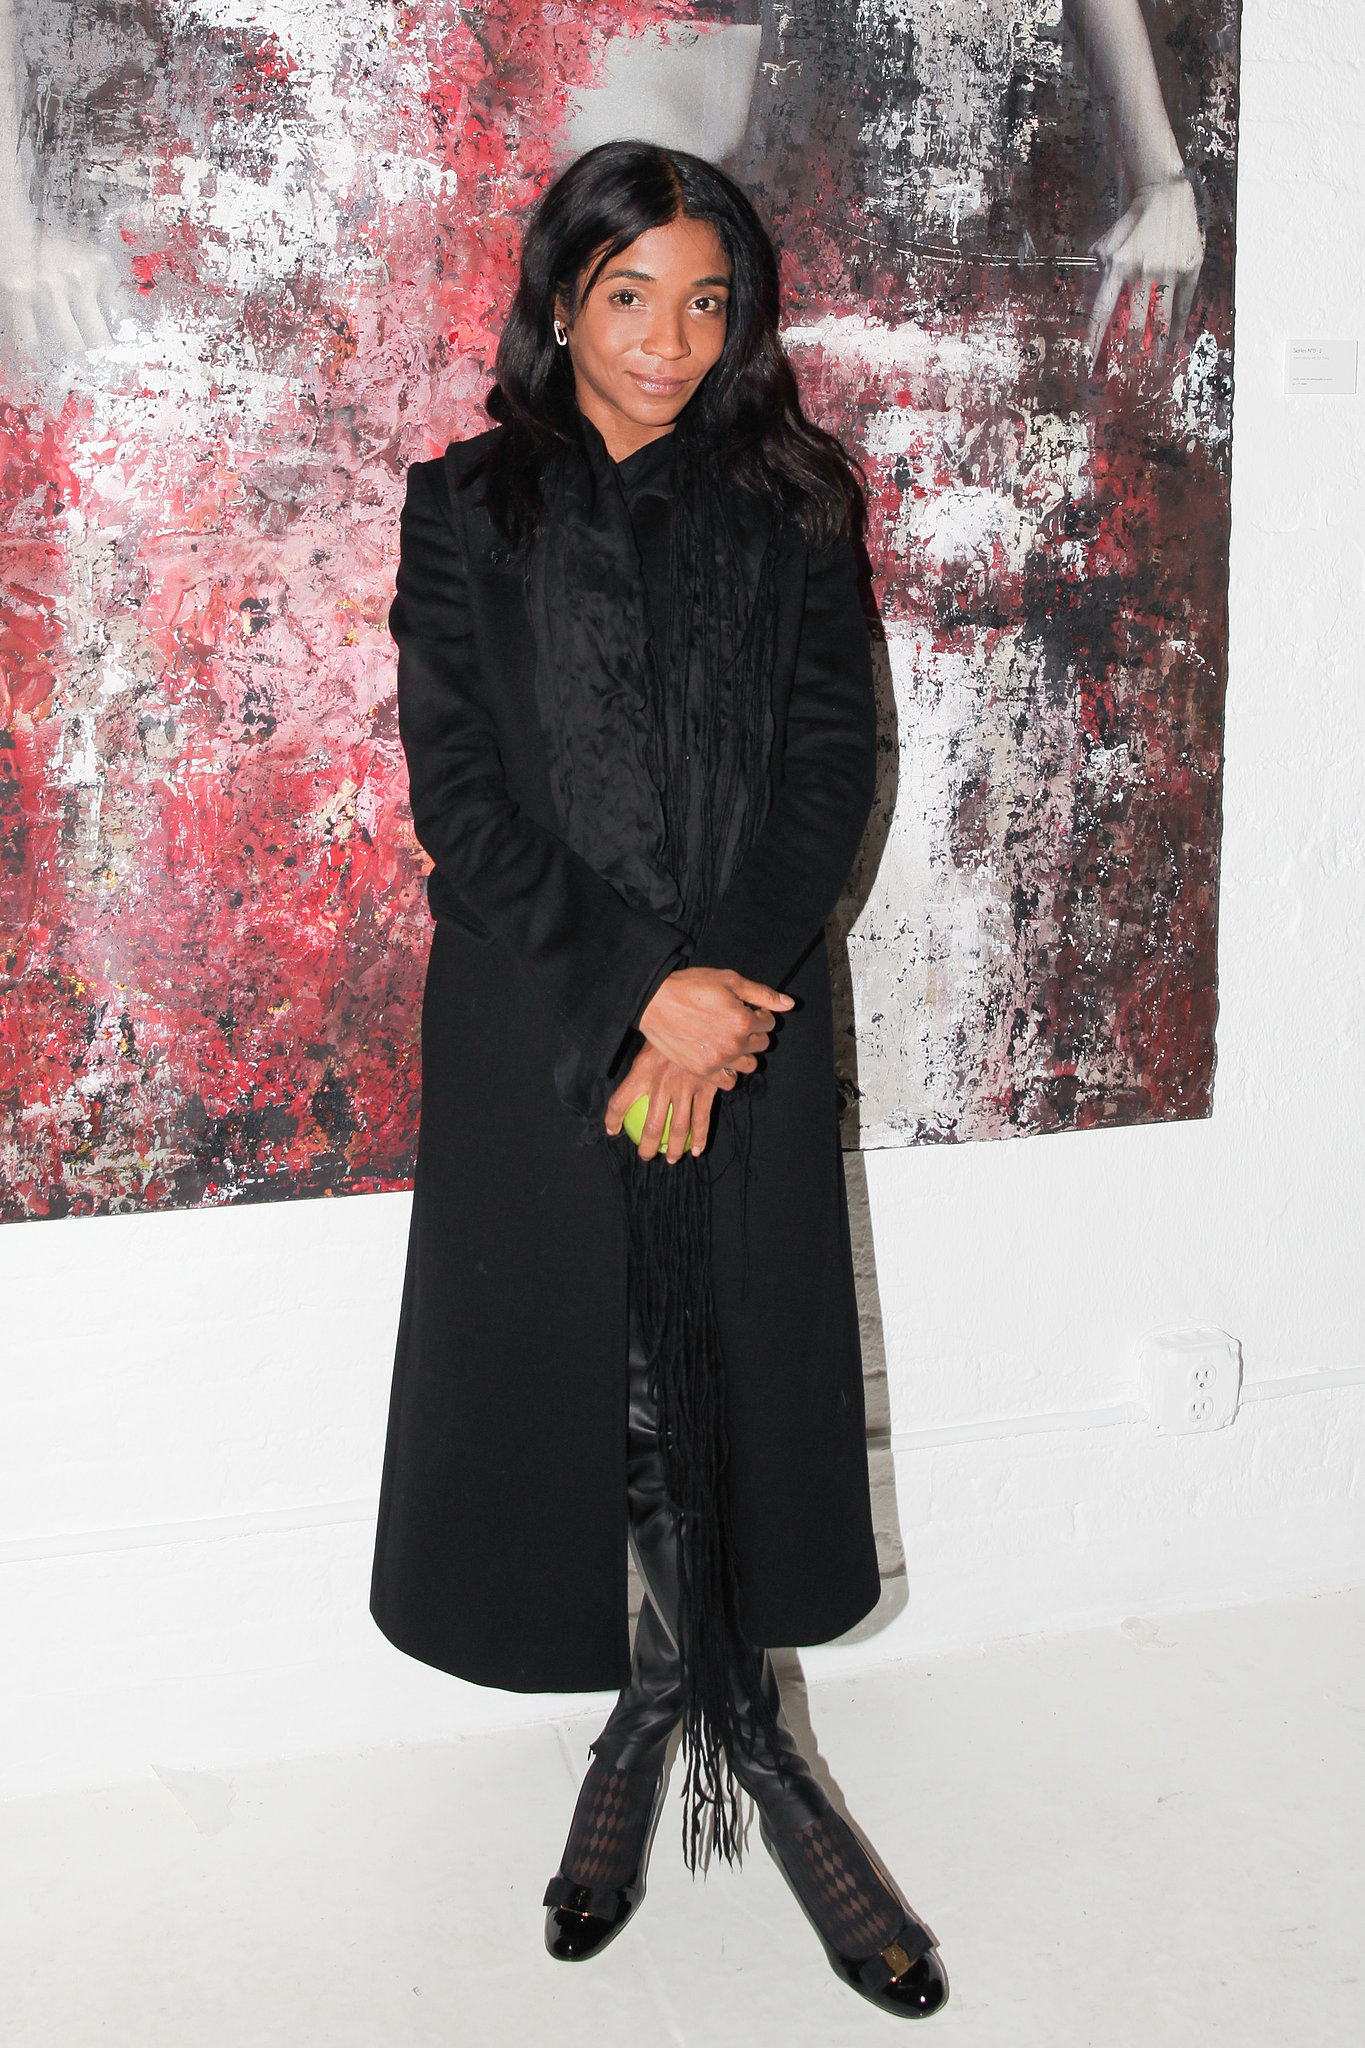 Genevieve Jones at Hunter & Gatti present The Series.